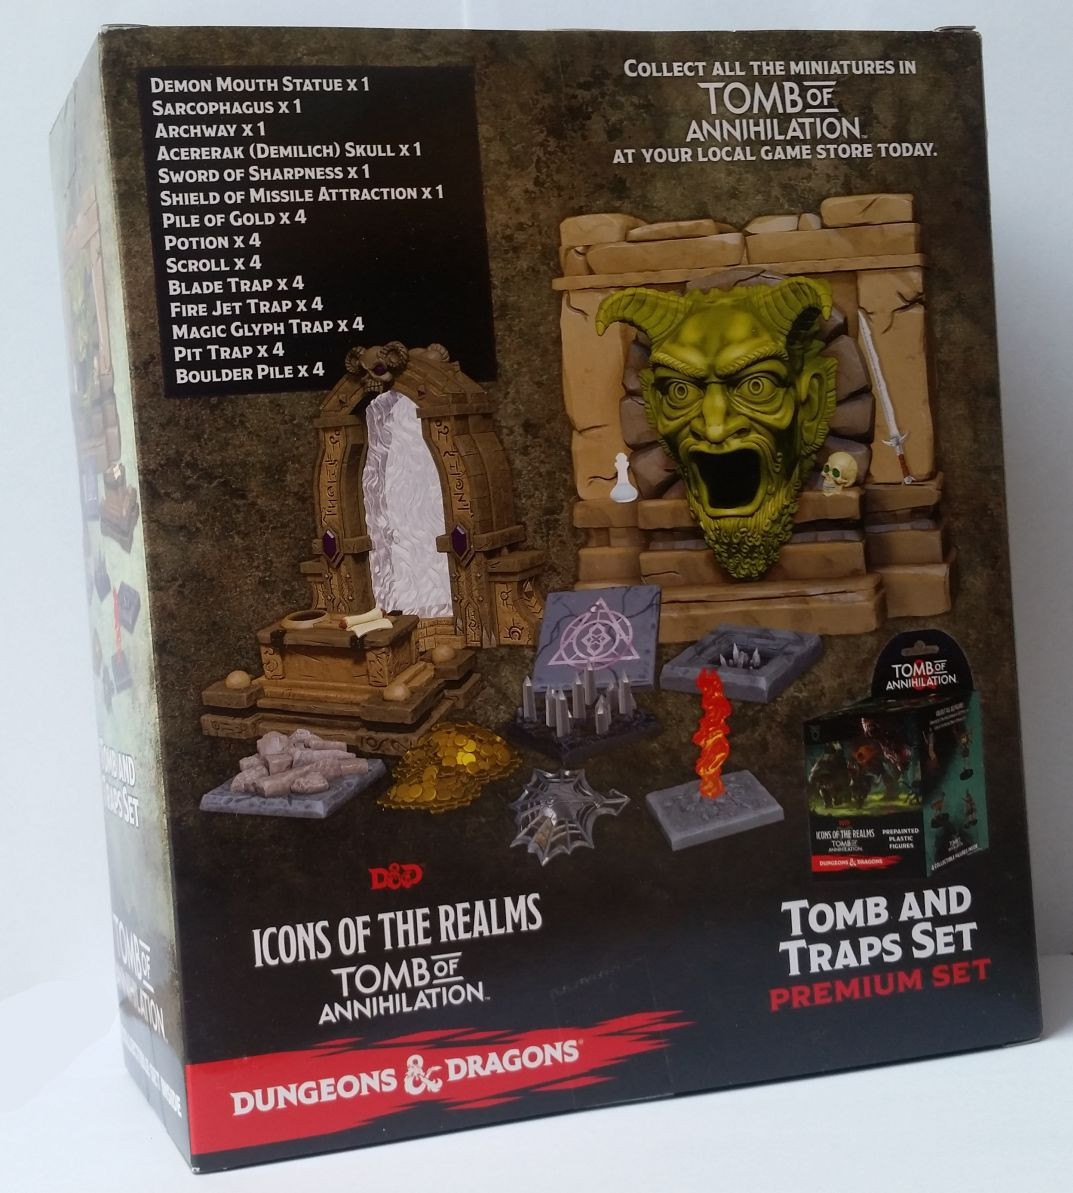 PIT TRAP Tomb of Annihilation Premium D/&D Dungeons and Dragons set